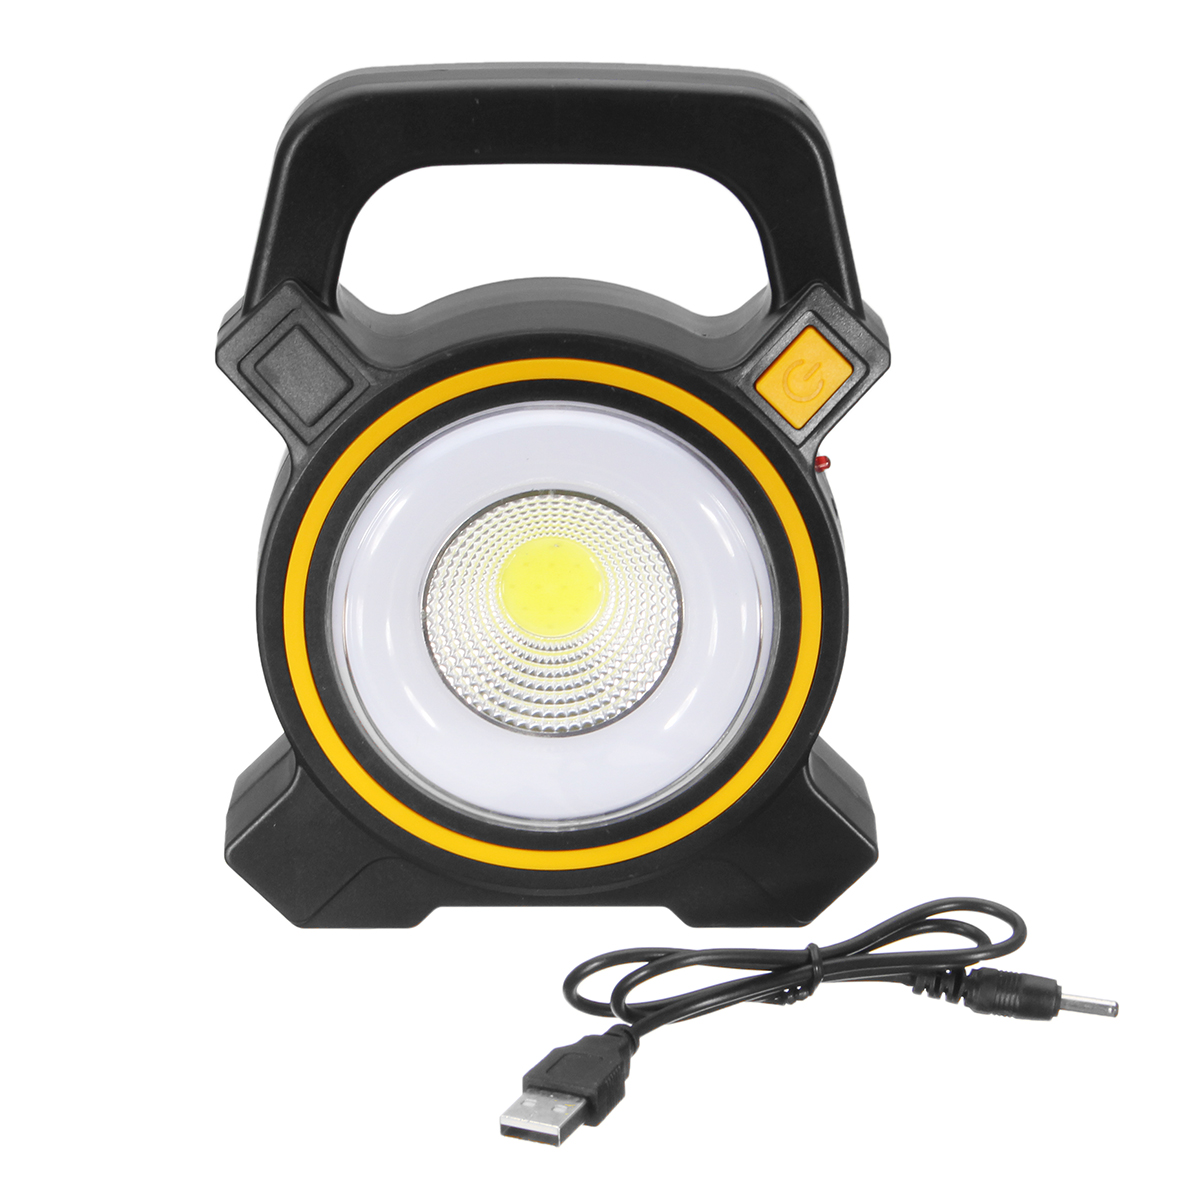 Outdoor 30W LED Camping Light Work Lamp Flood Light Fishing USB Rechargeable